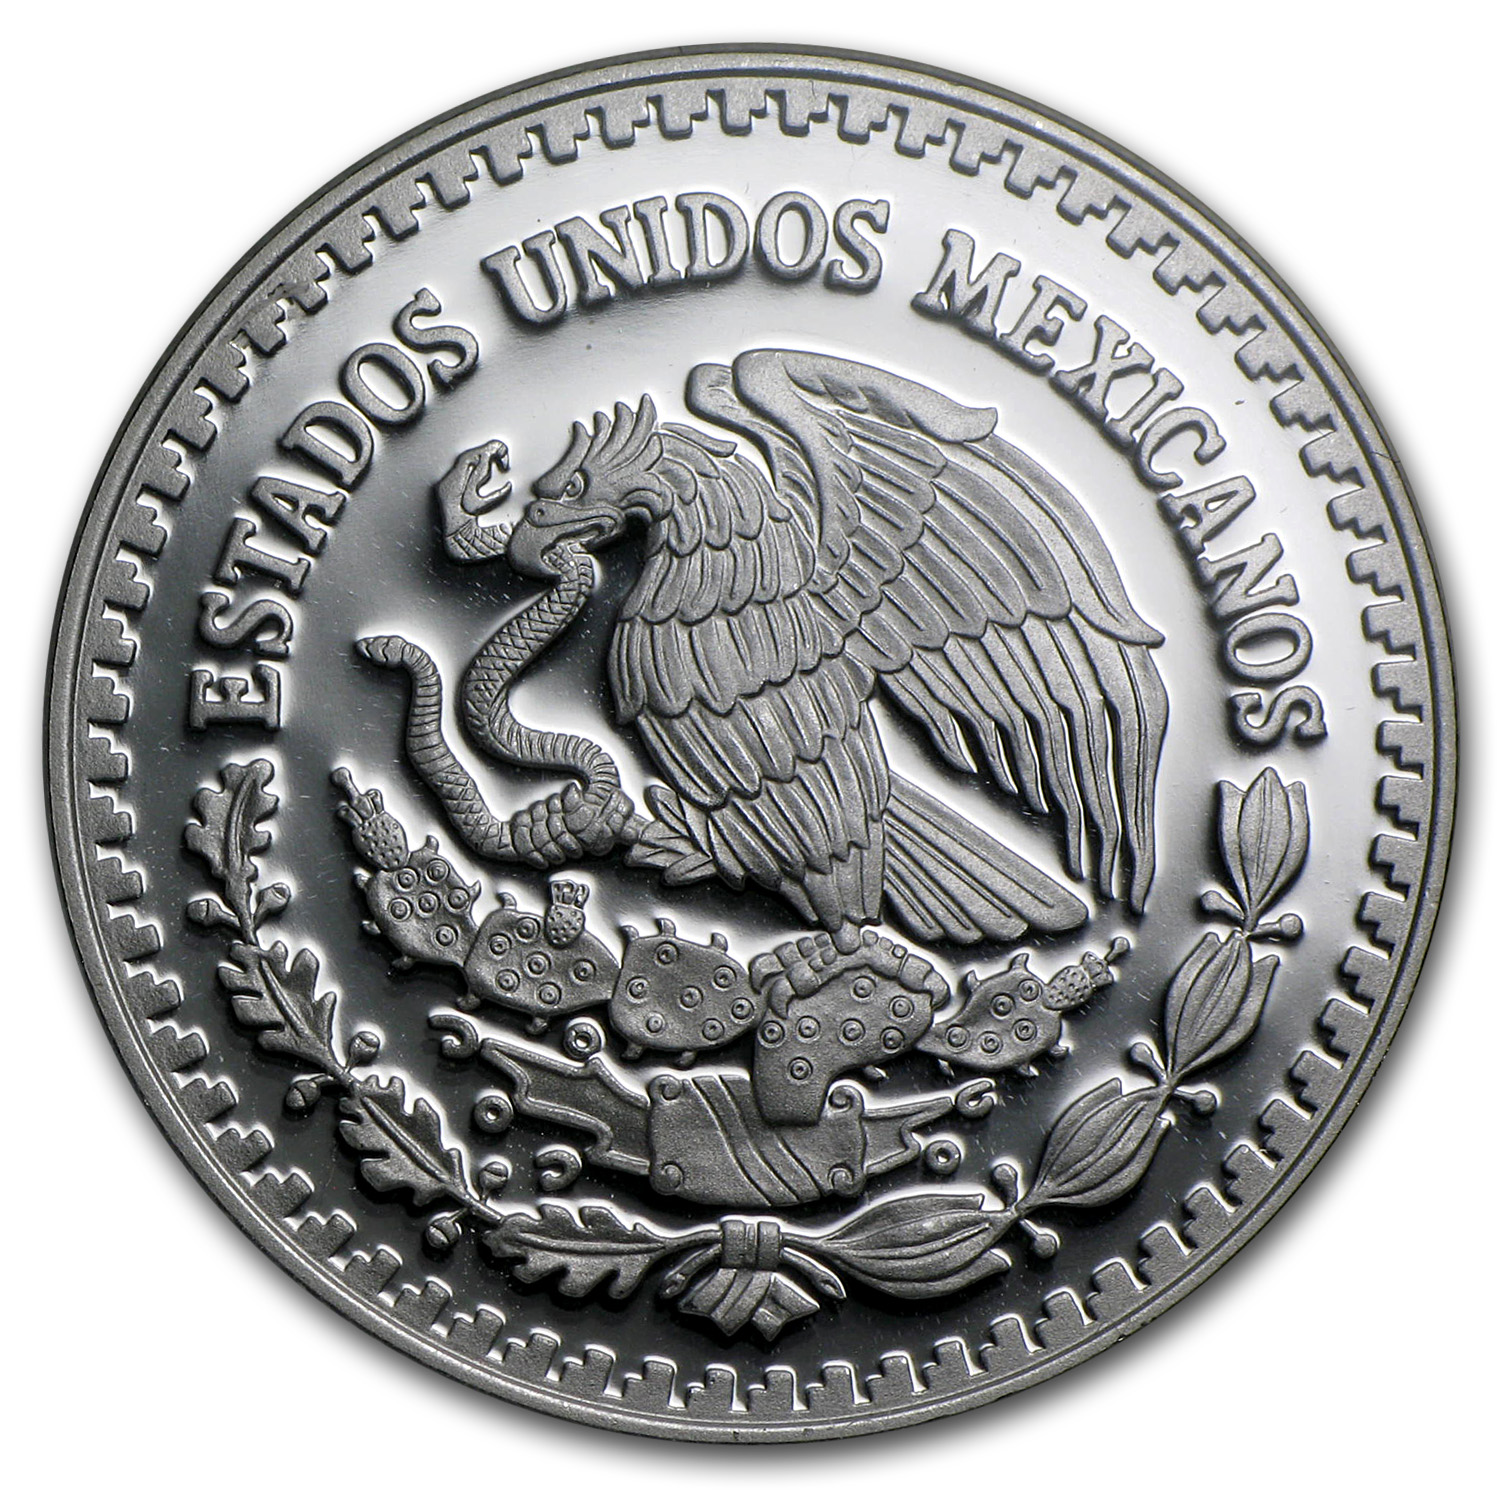 2013 Mexico 1/2 oz Silver Libertad Proof (In Capsule)